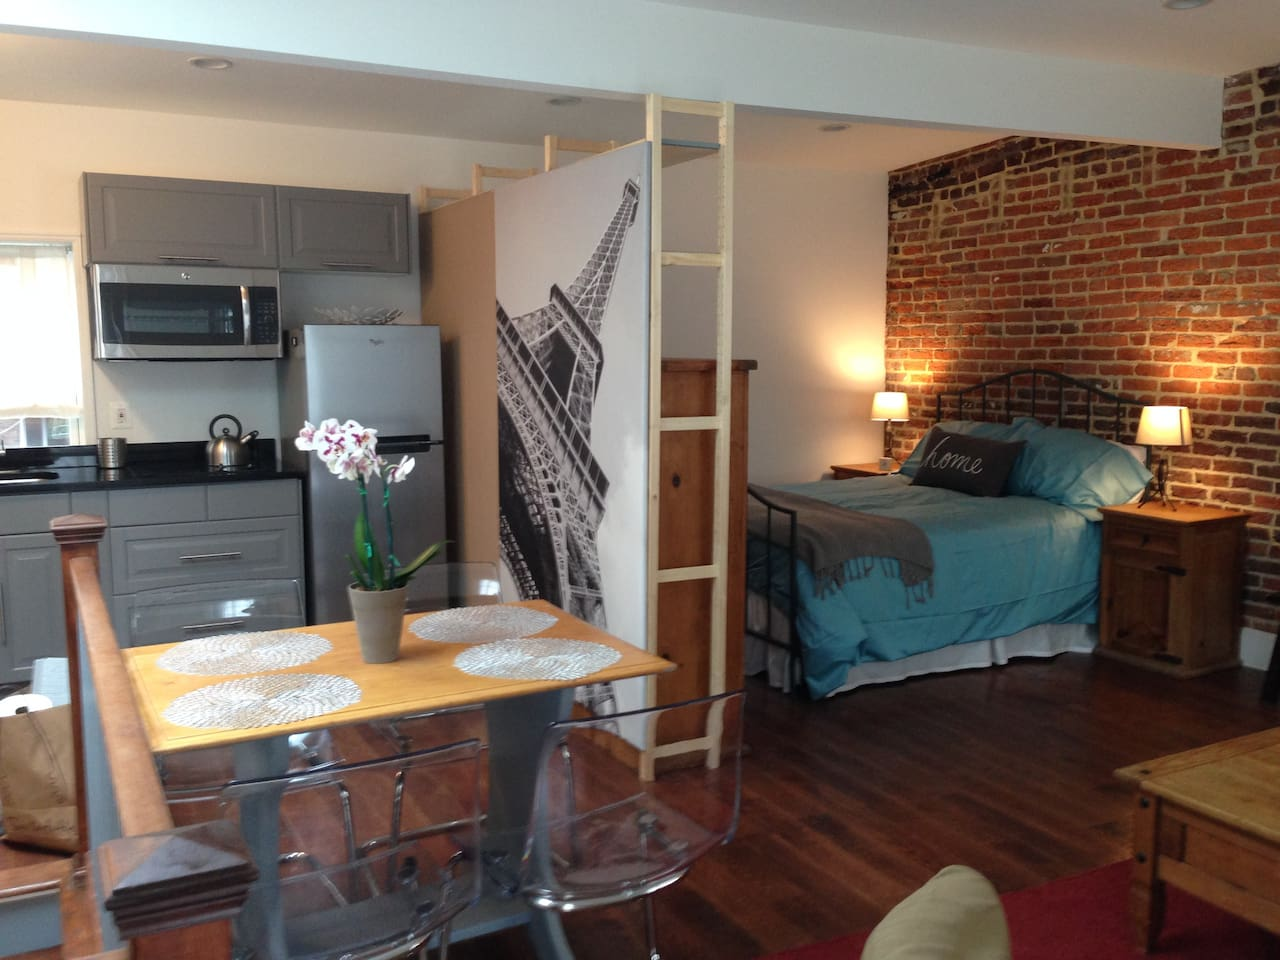 Comfortably furnished loft, oak floors, table for 4, queen size bed and spacious closet space